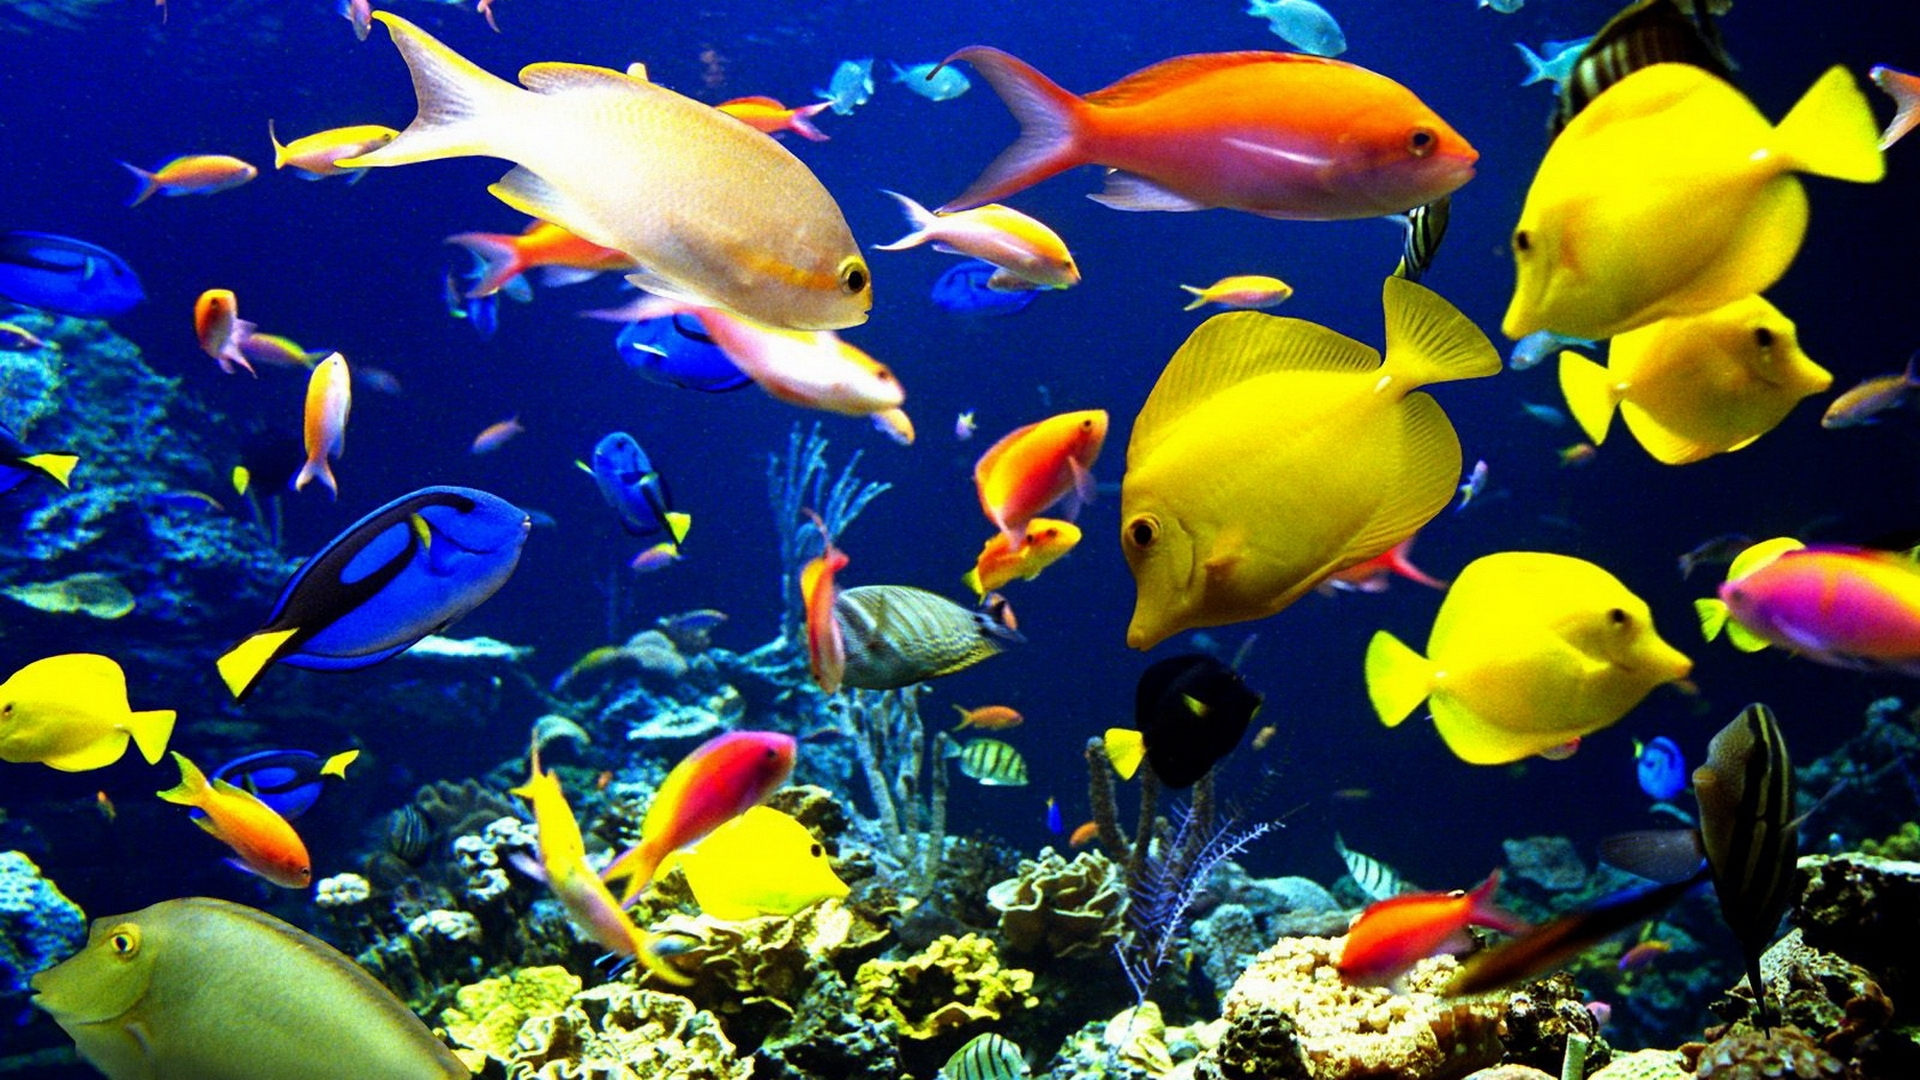 Aquariums in addition Freshwater Fish Excrete Nitrogenous Wastes As in addition Sharks With Human Teeth 1 5 Million Toothpicks besides Global warming threatens Nemo fish 999 together with Biggest Fish Ever Caught. on oscar fish biology